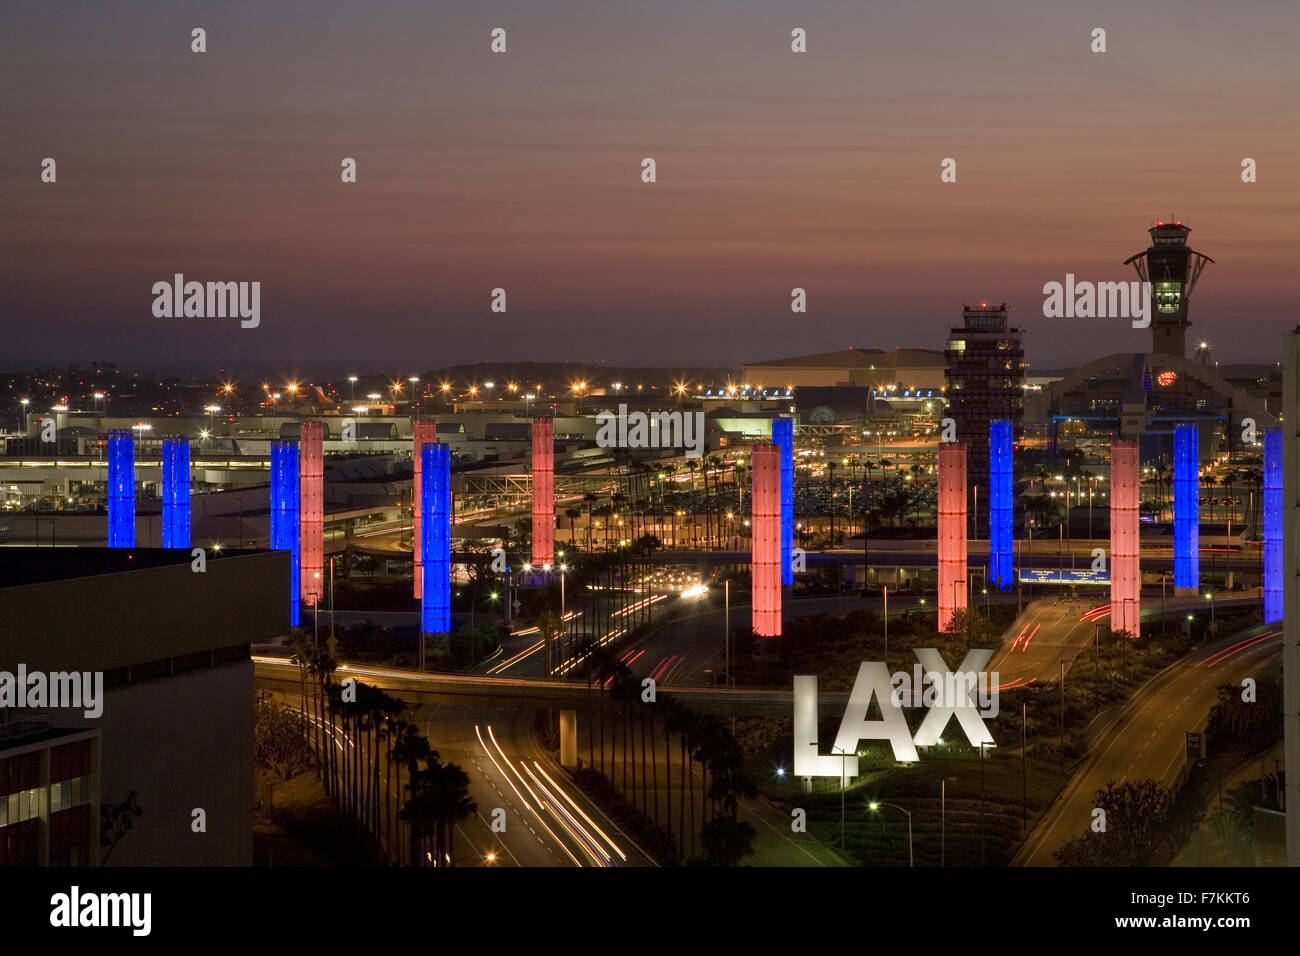 Aerial view of LAX Los Angeles International Airport at sunset with decorative light tubes, Los Angeles, California - Stock Image